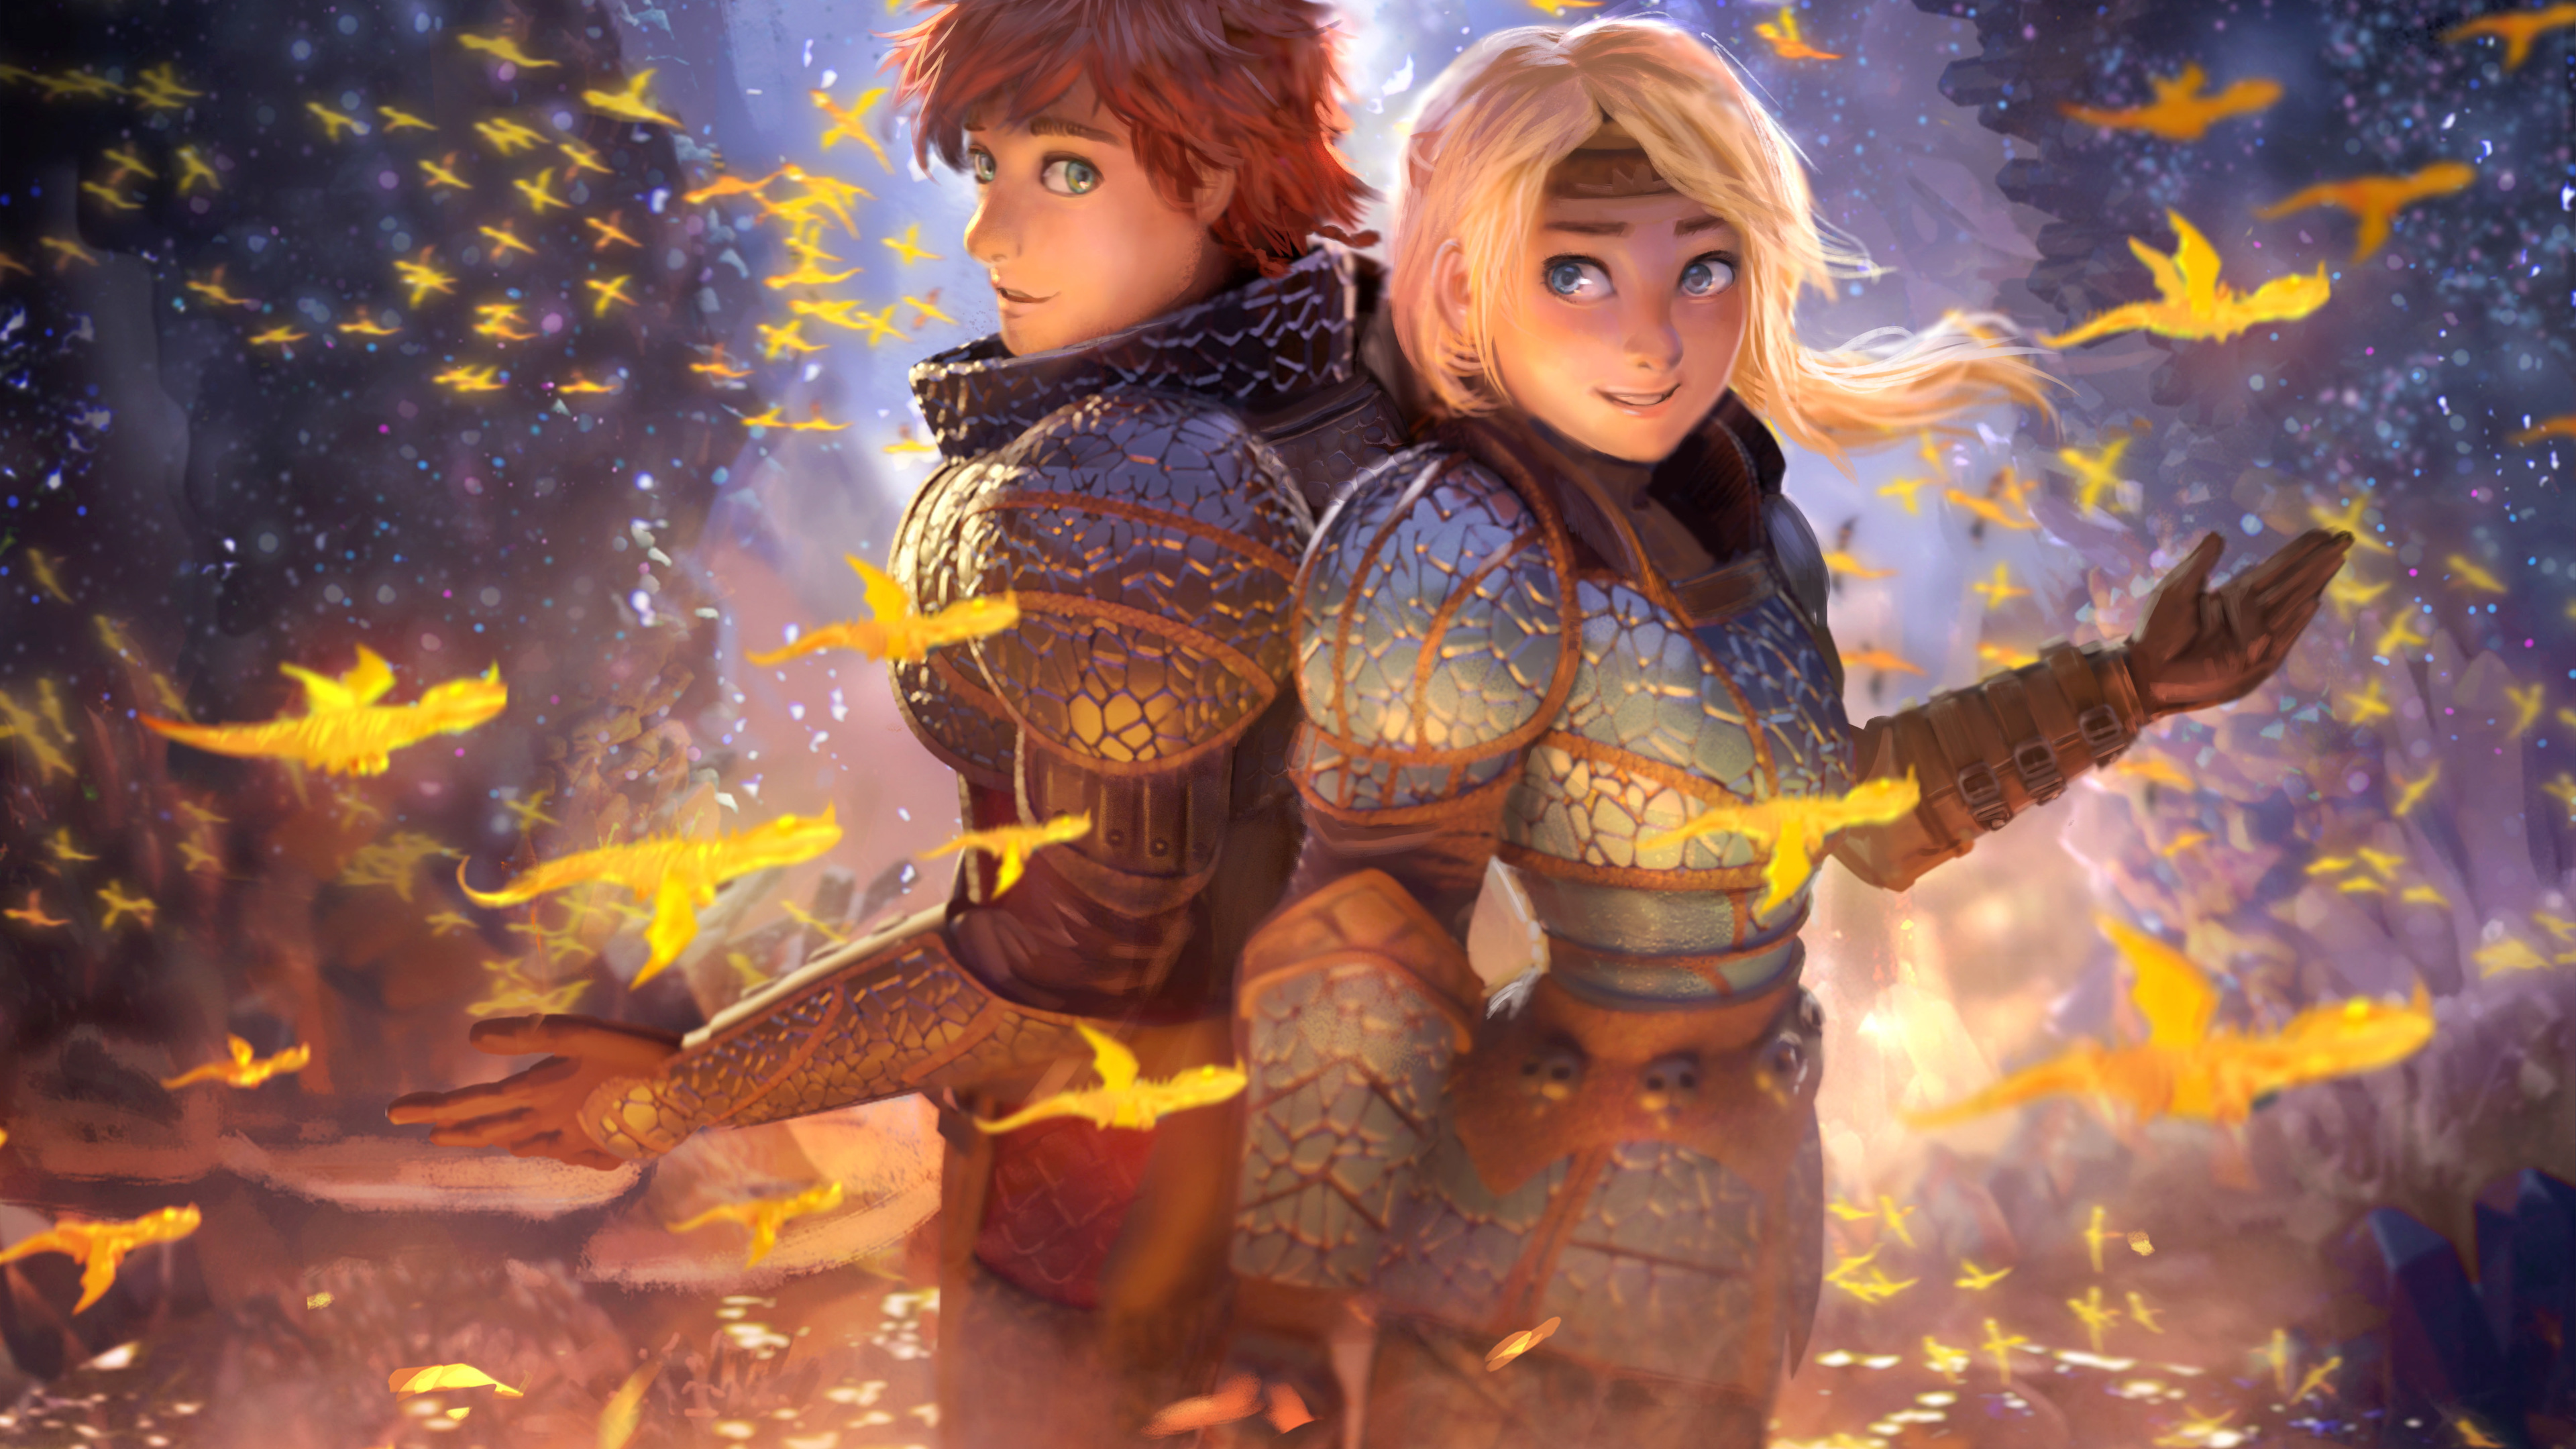 hiccup and astrid 1563220457 - Hiccup And Astrid - movies wallpapers, how to train your dragon wallpapers, how to train your dragon the hidden world wallpapers, hd-wallpapers, digital art wallpapers, deviantart wallpapers, artwork wallpapers, artist wallpapers, 5k wallpapers, 4k-wallpapers, 2019 movies wallpapers